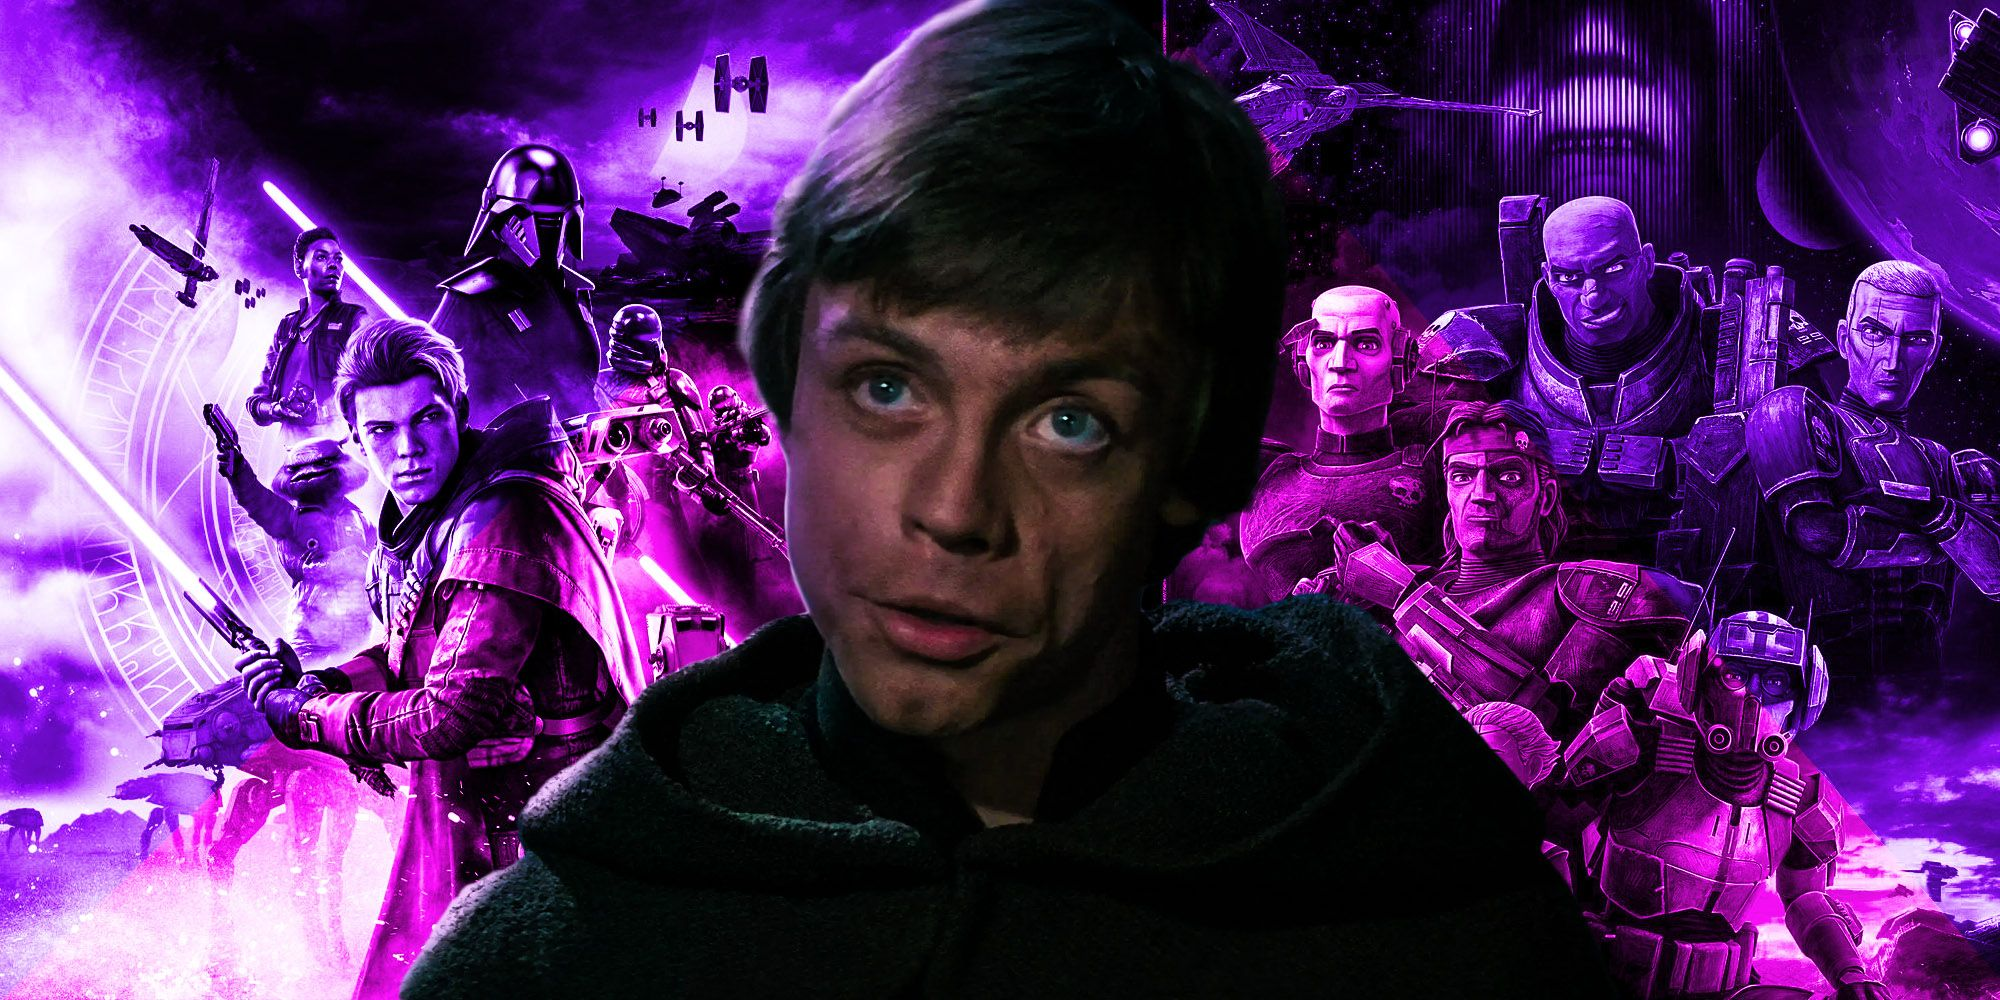 Disney's Star Wars Canon Is Doing All The Work In Connecting Lucas' Trilogies